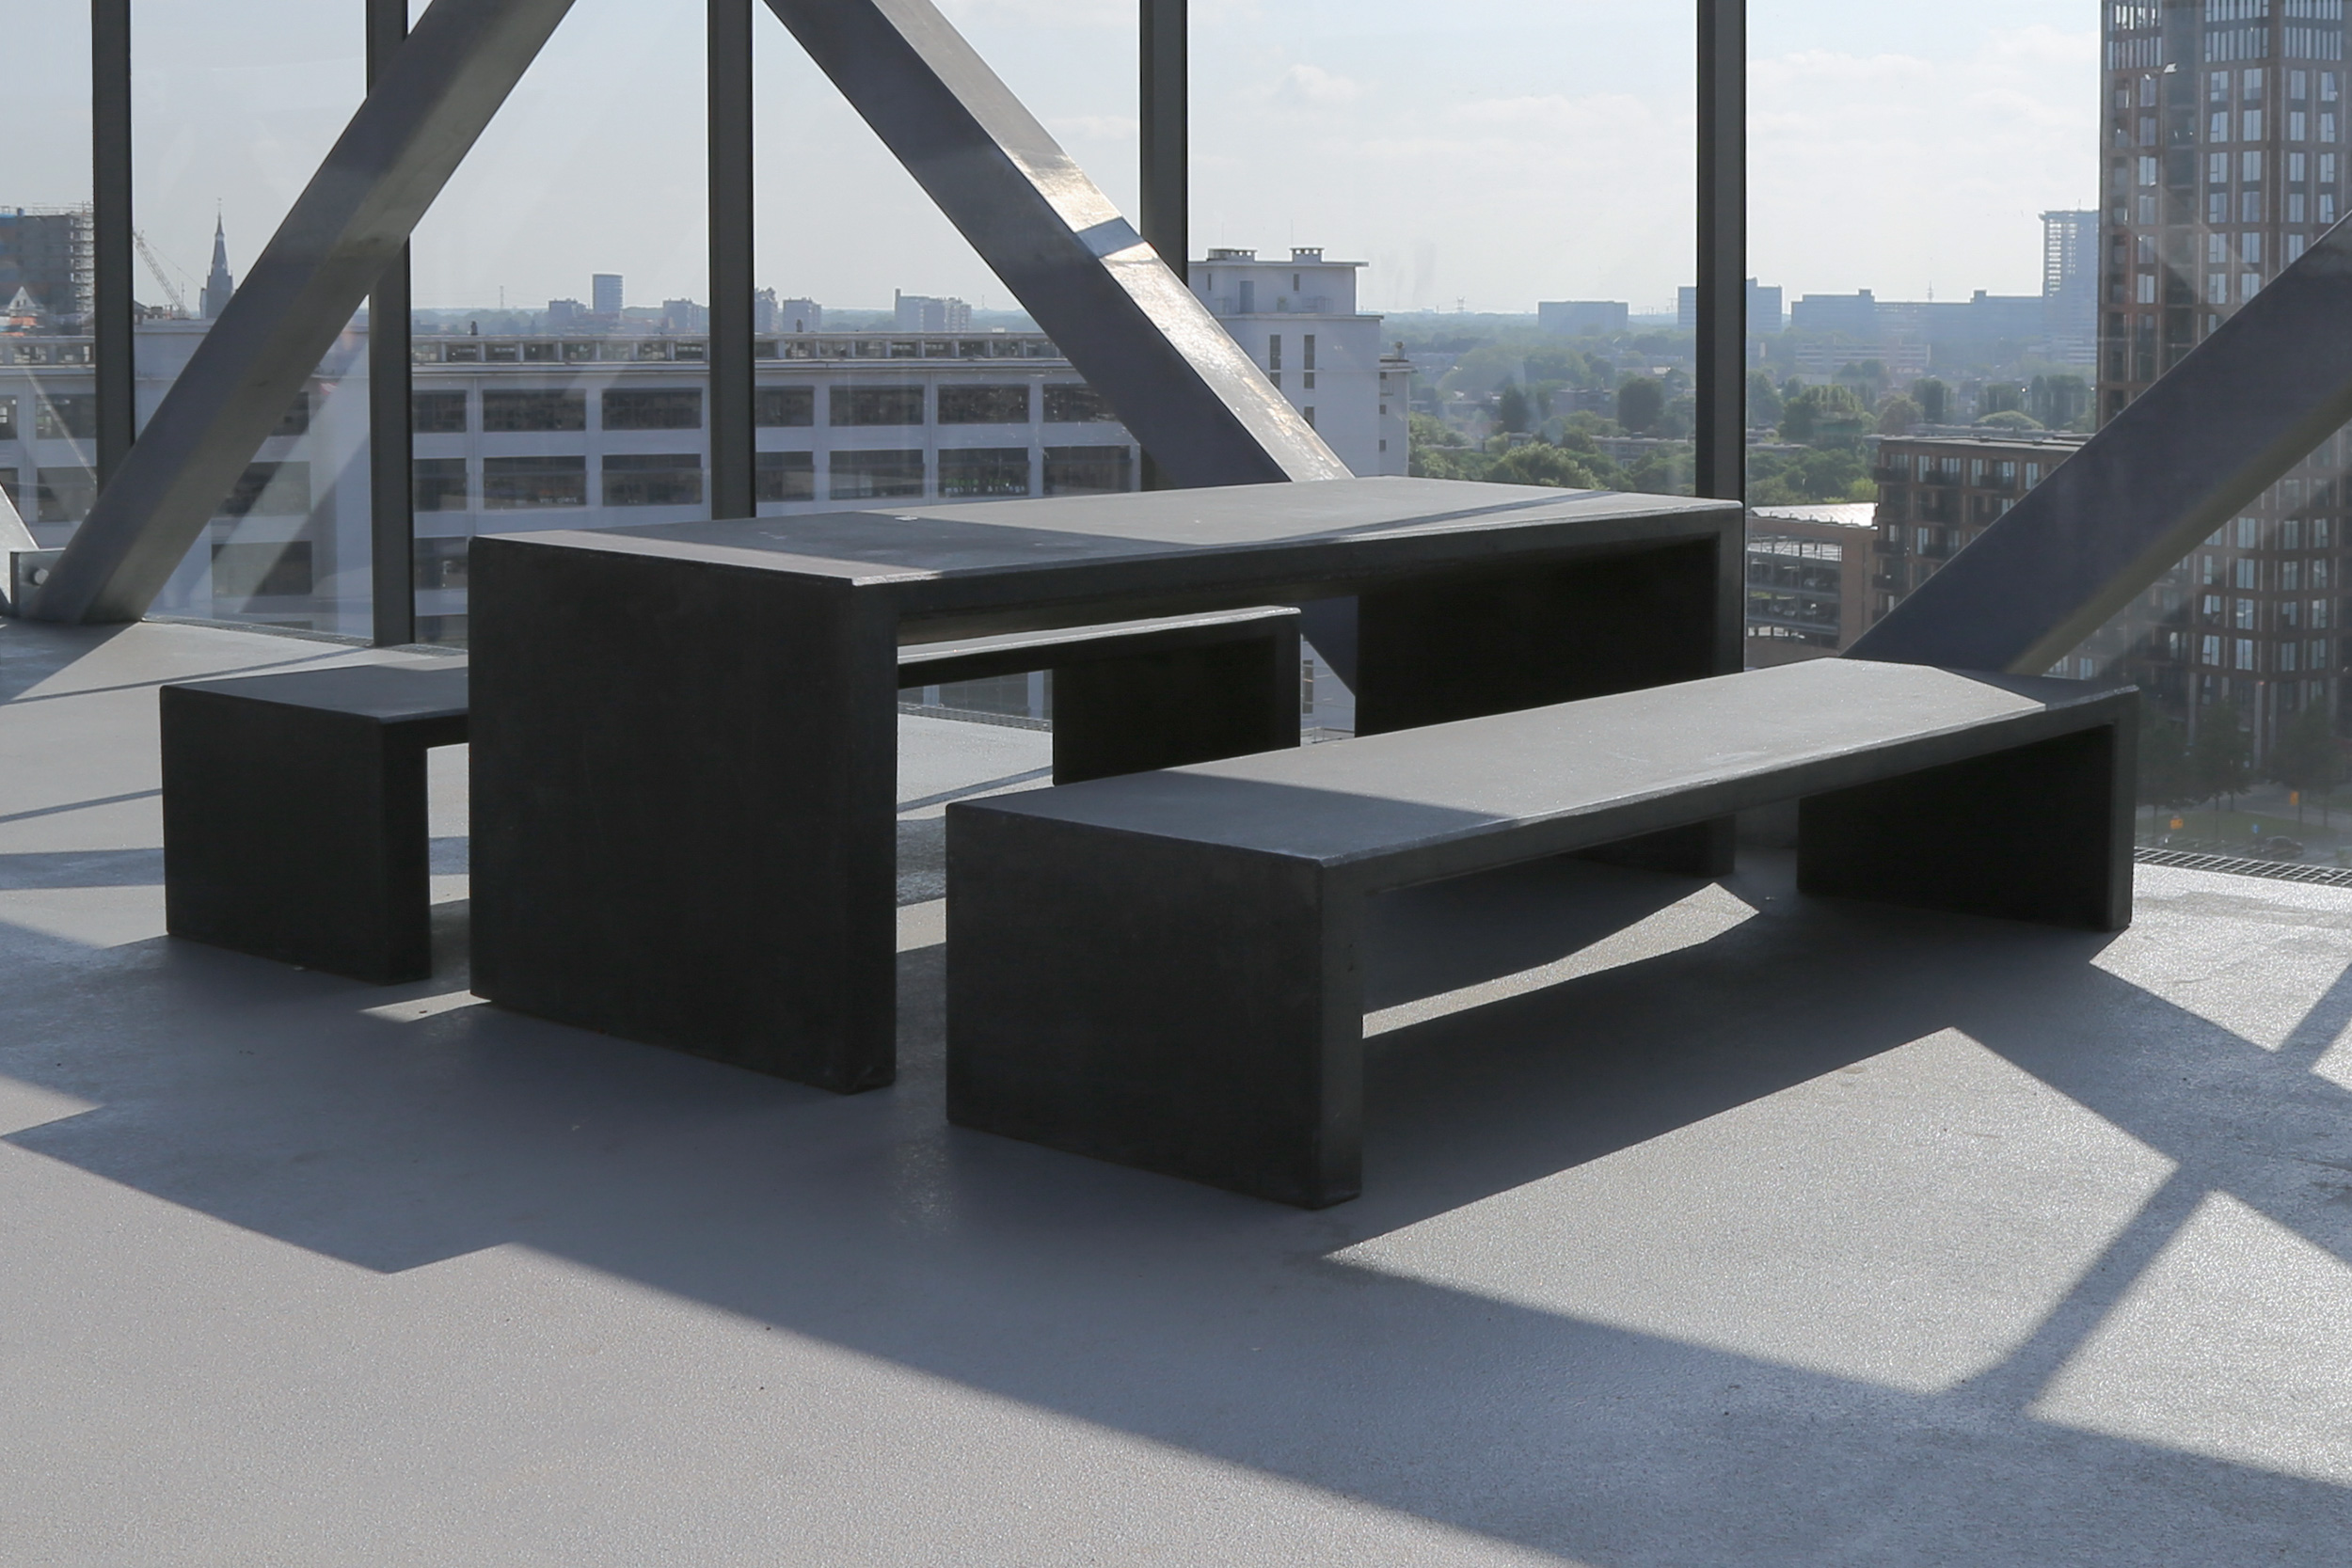 Black picnic tables from the terrace of the Klokgebouw building, the Netherlands.